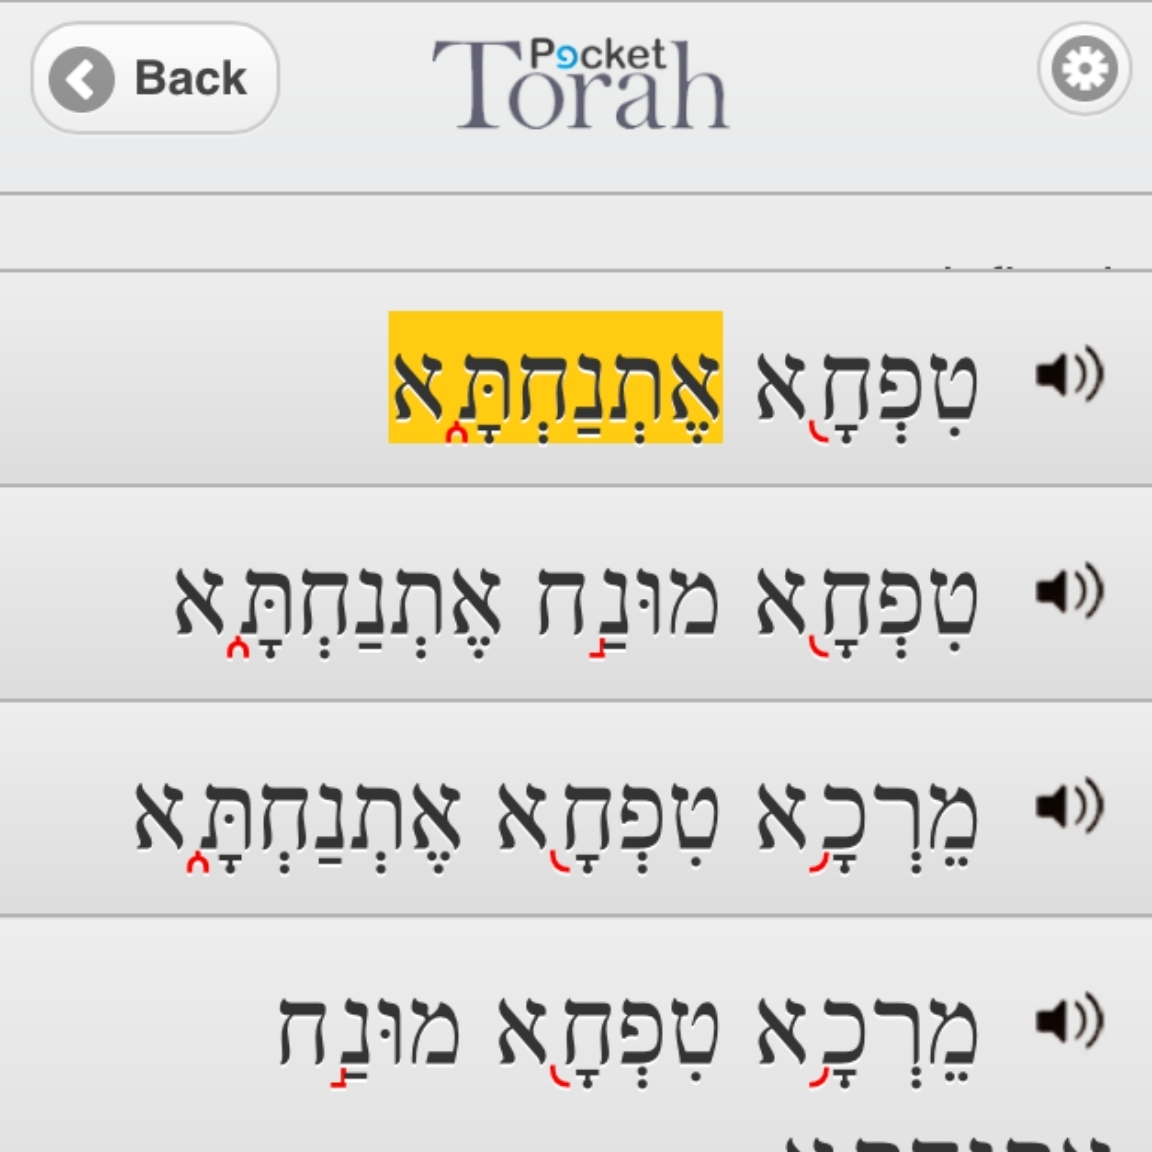 pocket-torah